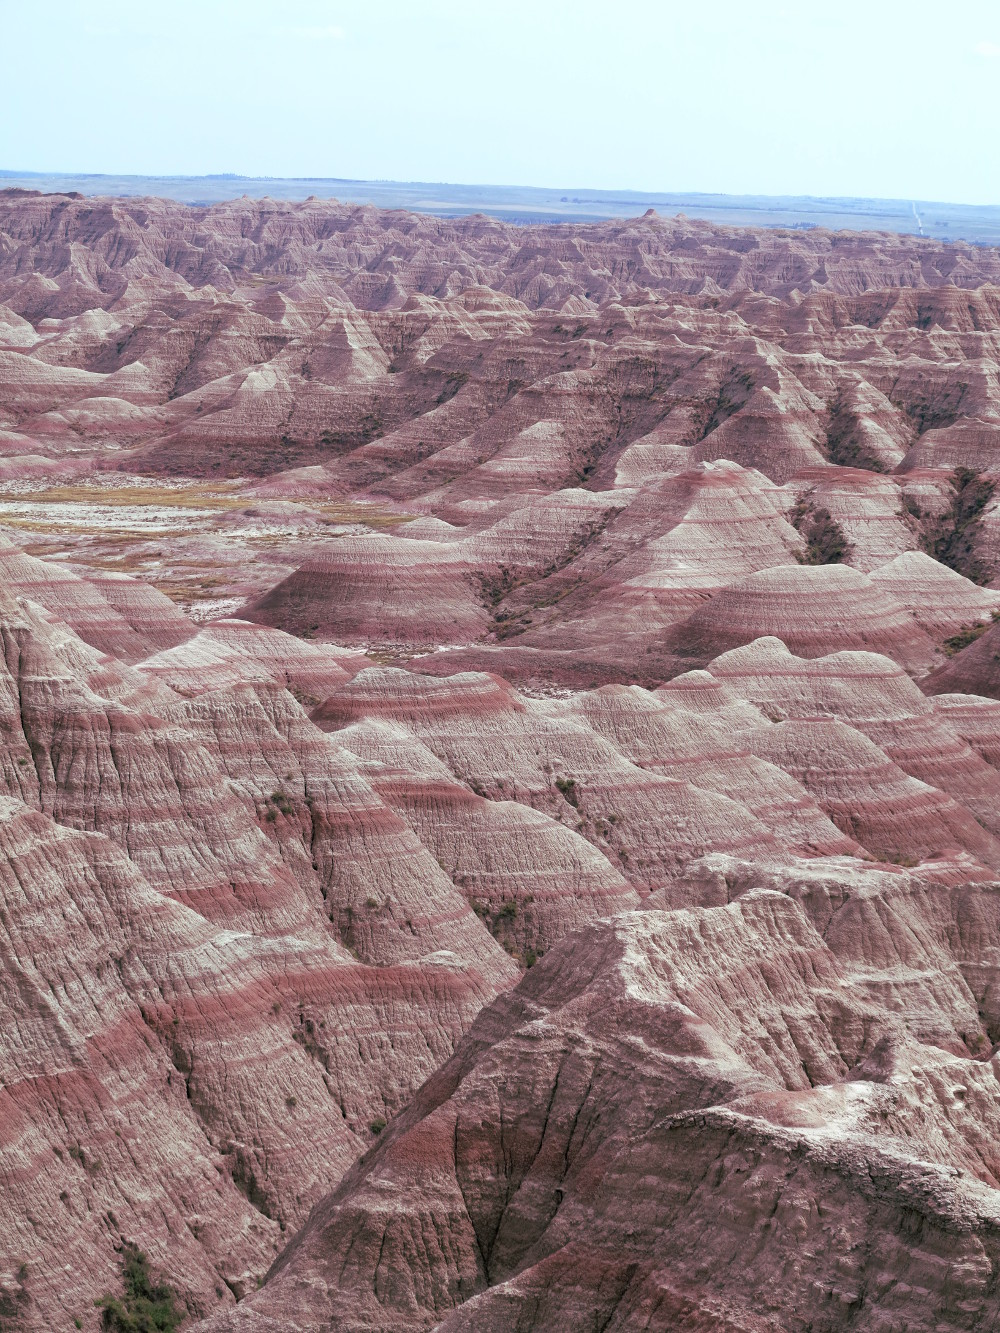 The beautiful scenery of the Badlands Double-Barrelledtravel